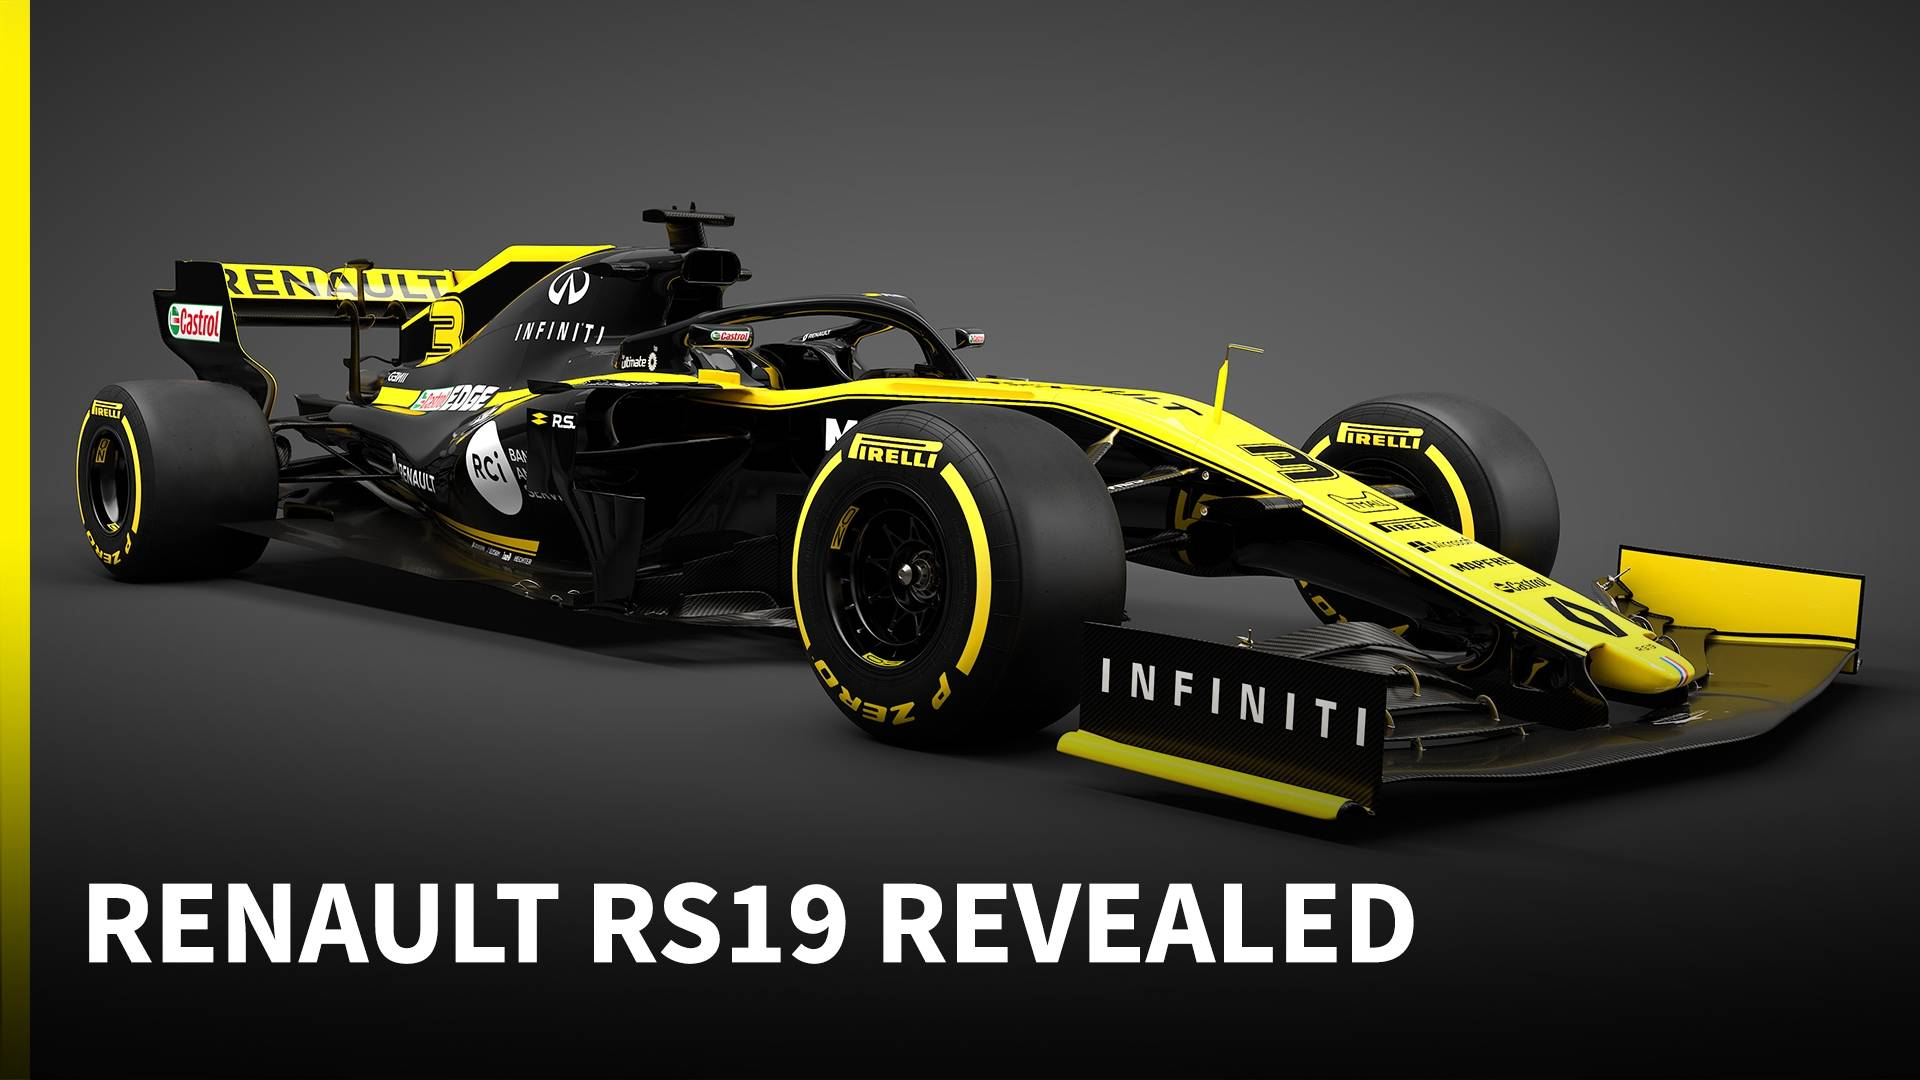 Renault's 2019 hinges on what it hasn't shown